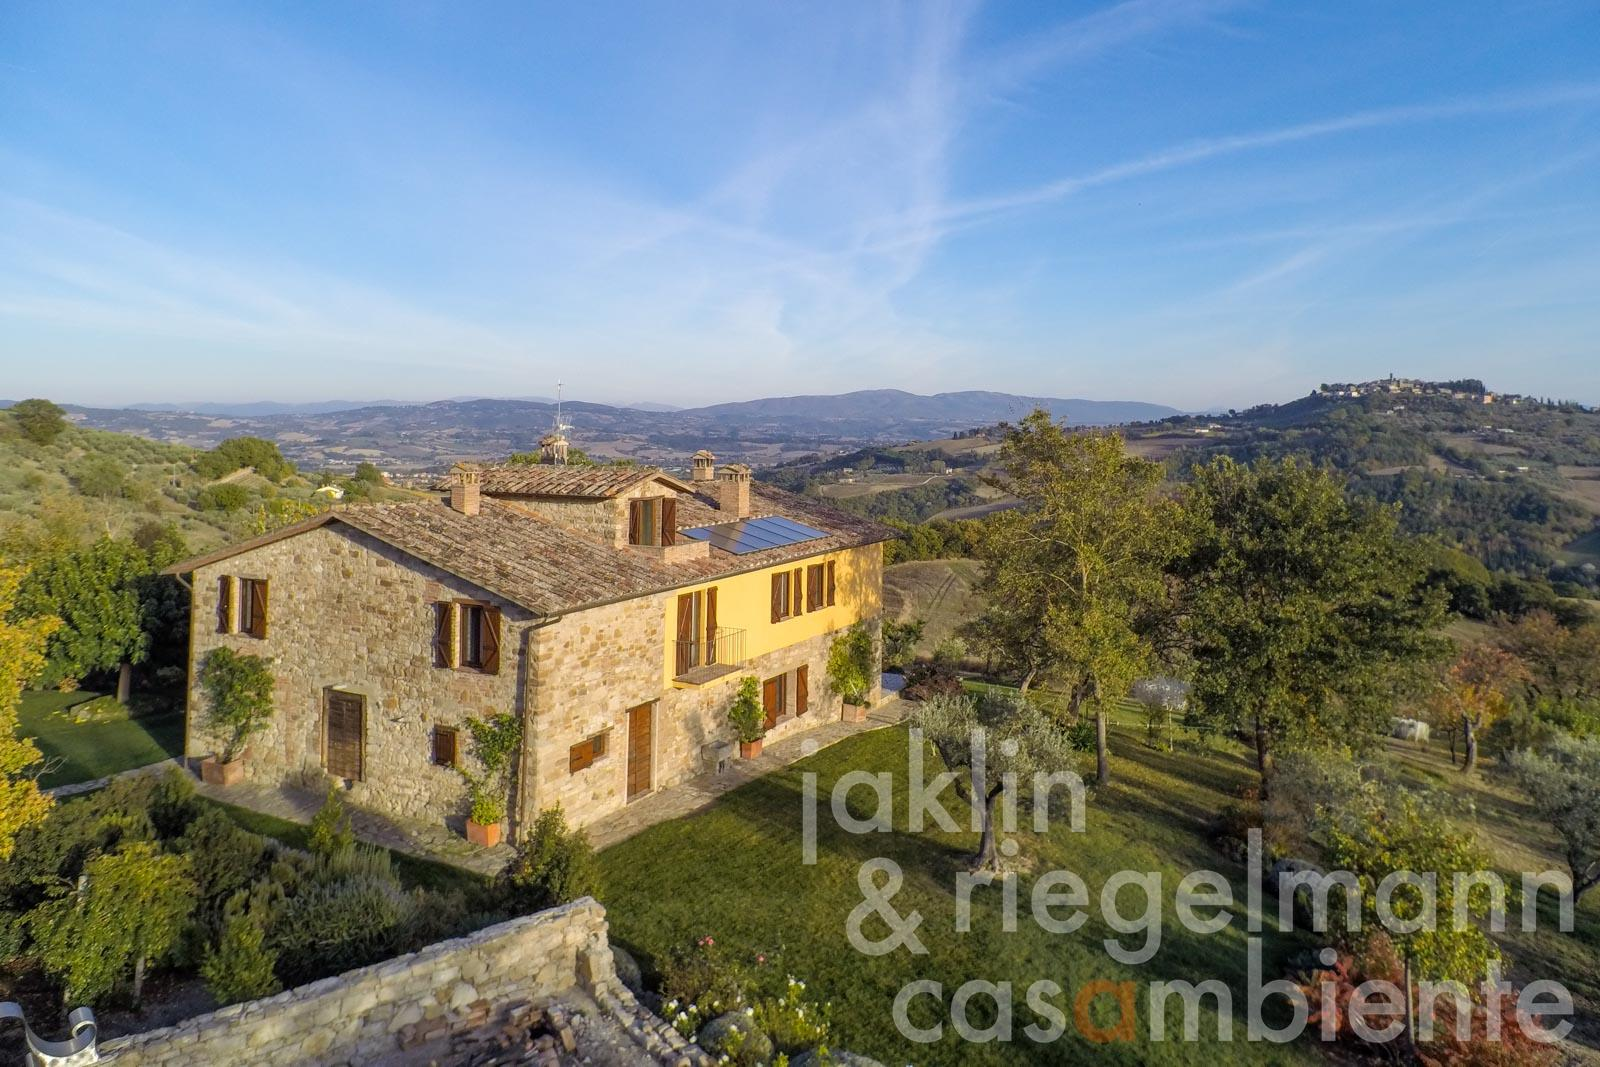 Stylishly restored farmhouse with outdoor jacuzzi, in a hilly position with stunning views near Todi